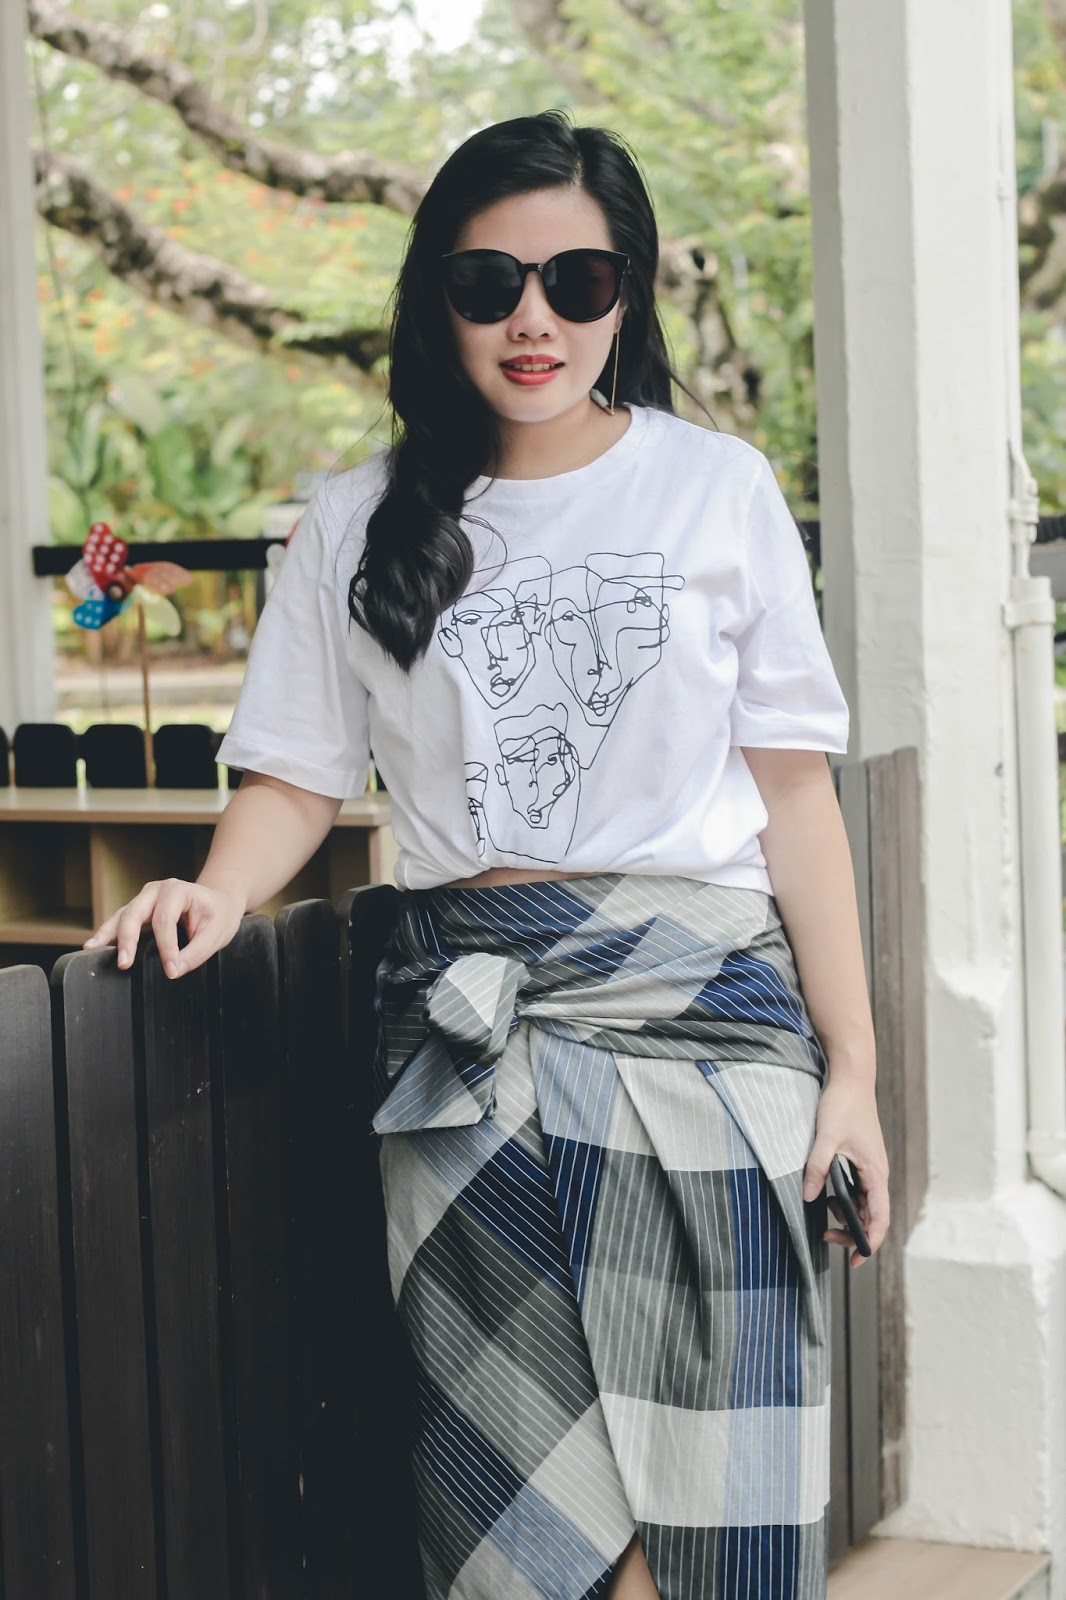 singapore blogger stylist fashion look book street style photography white t-shirt